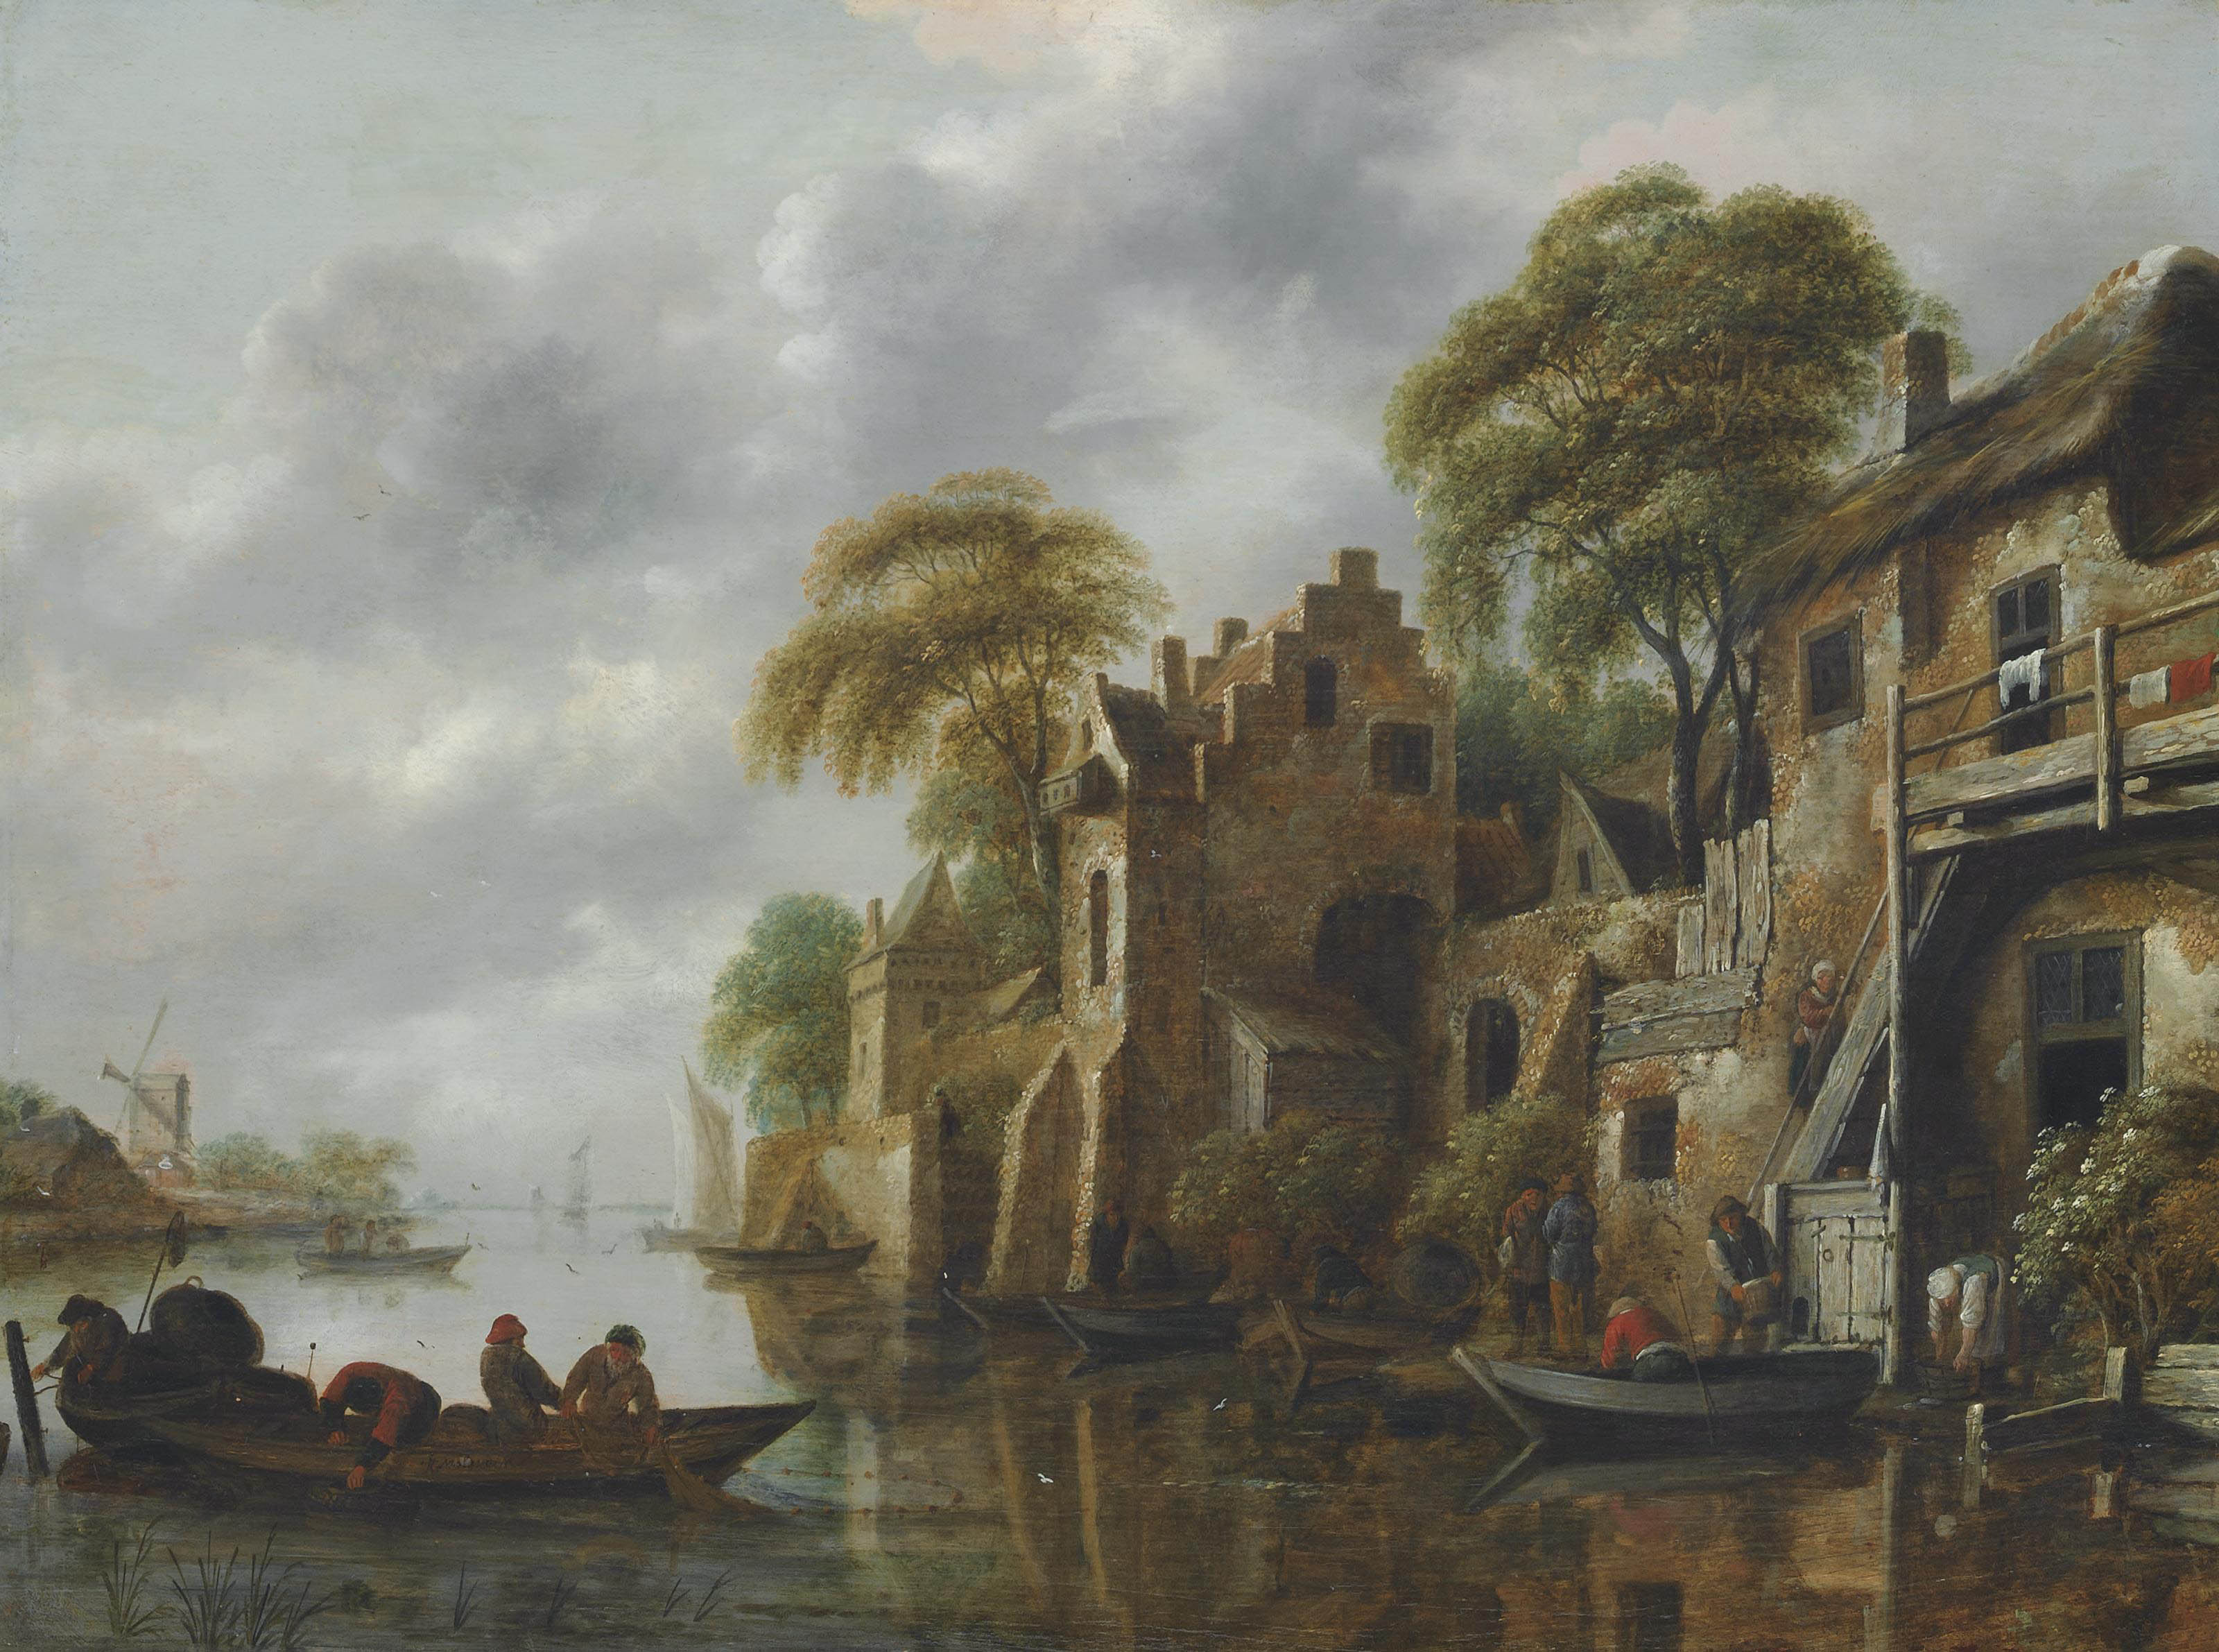 A river landscape with fishermen loading their nets, beside a town